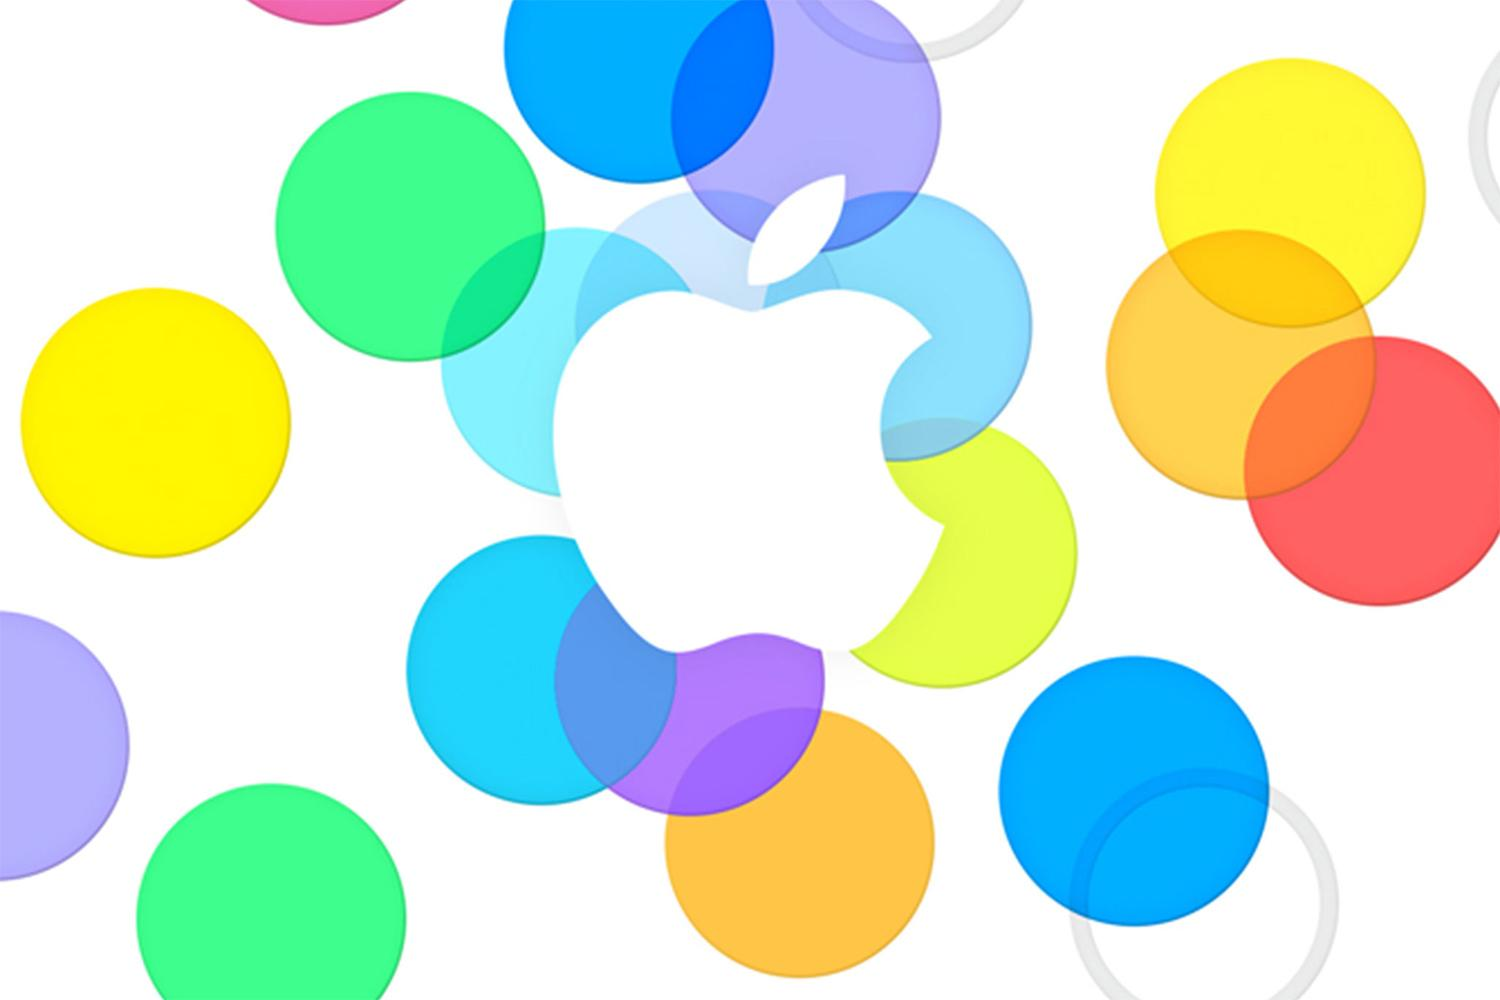 apple sep 10 iphone 5s 5c - Apple might Abandon Game Center in iOS 8